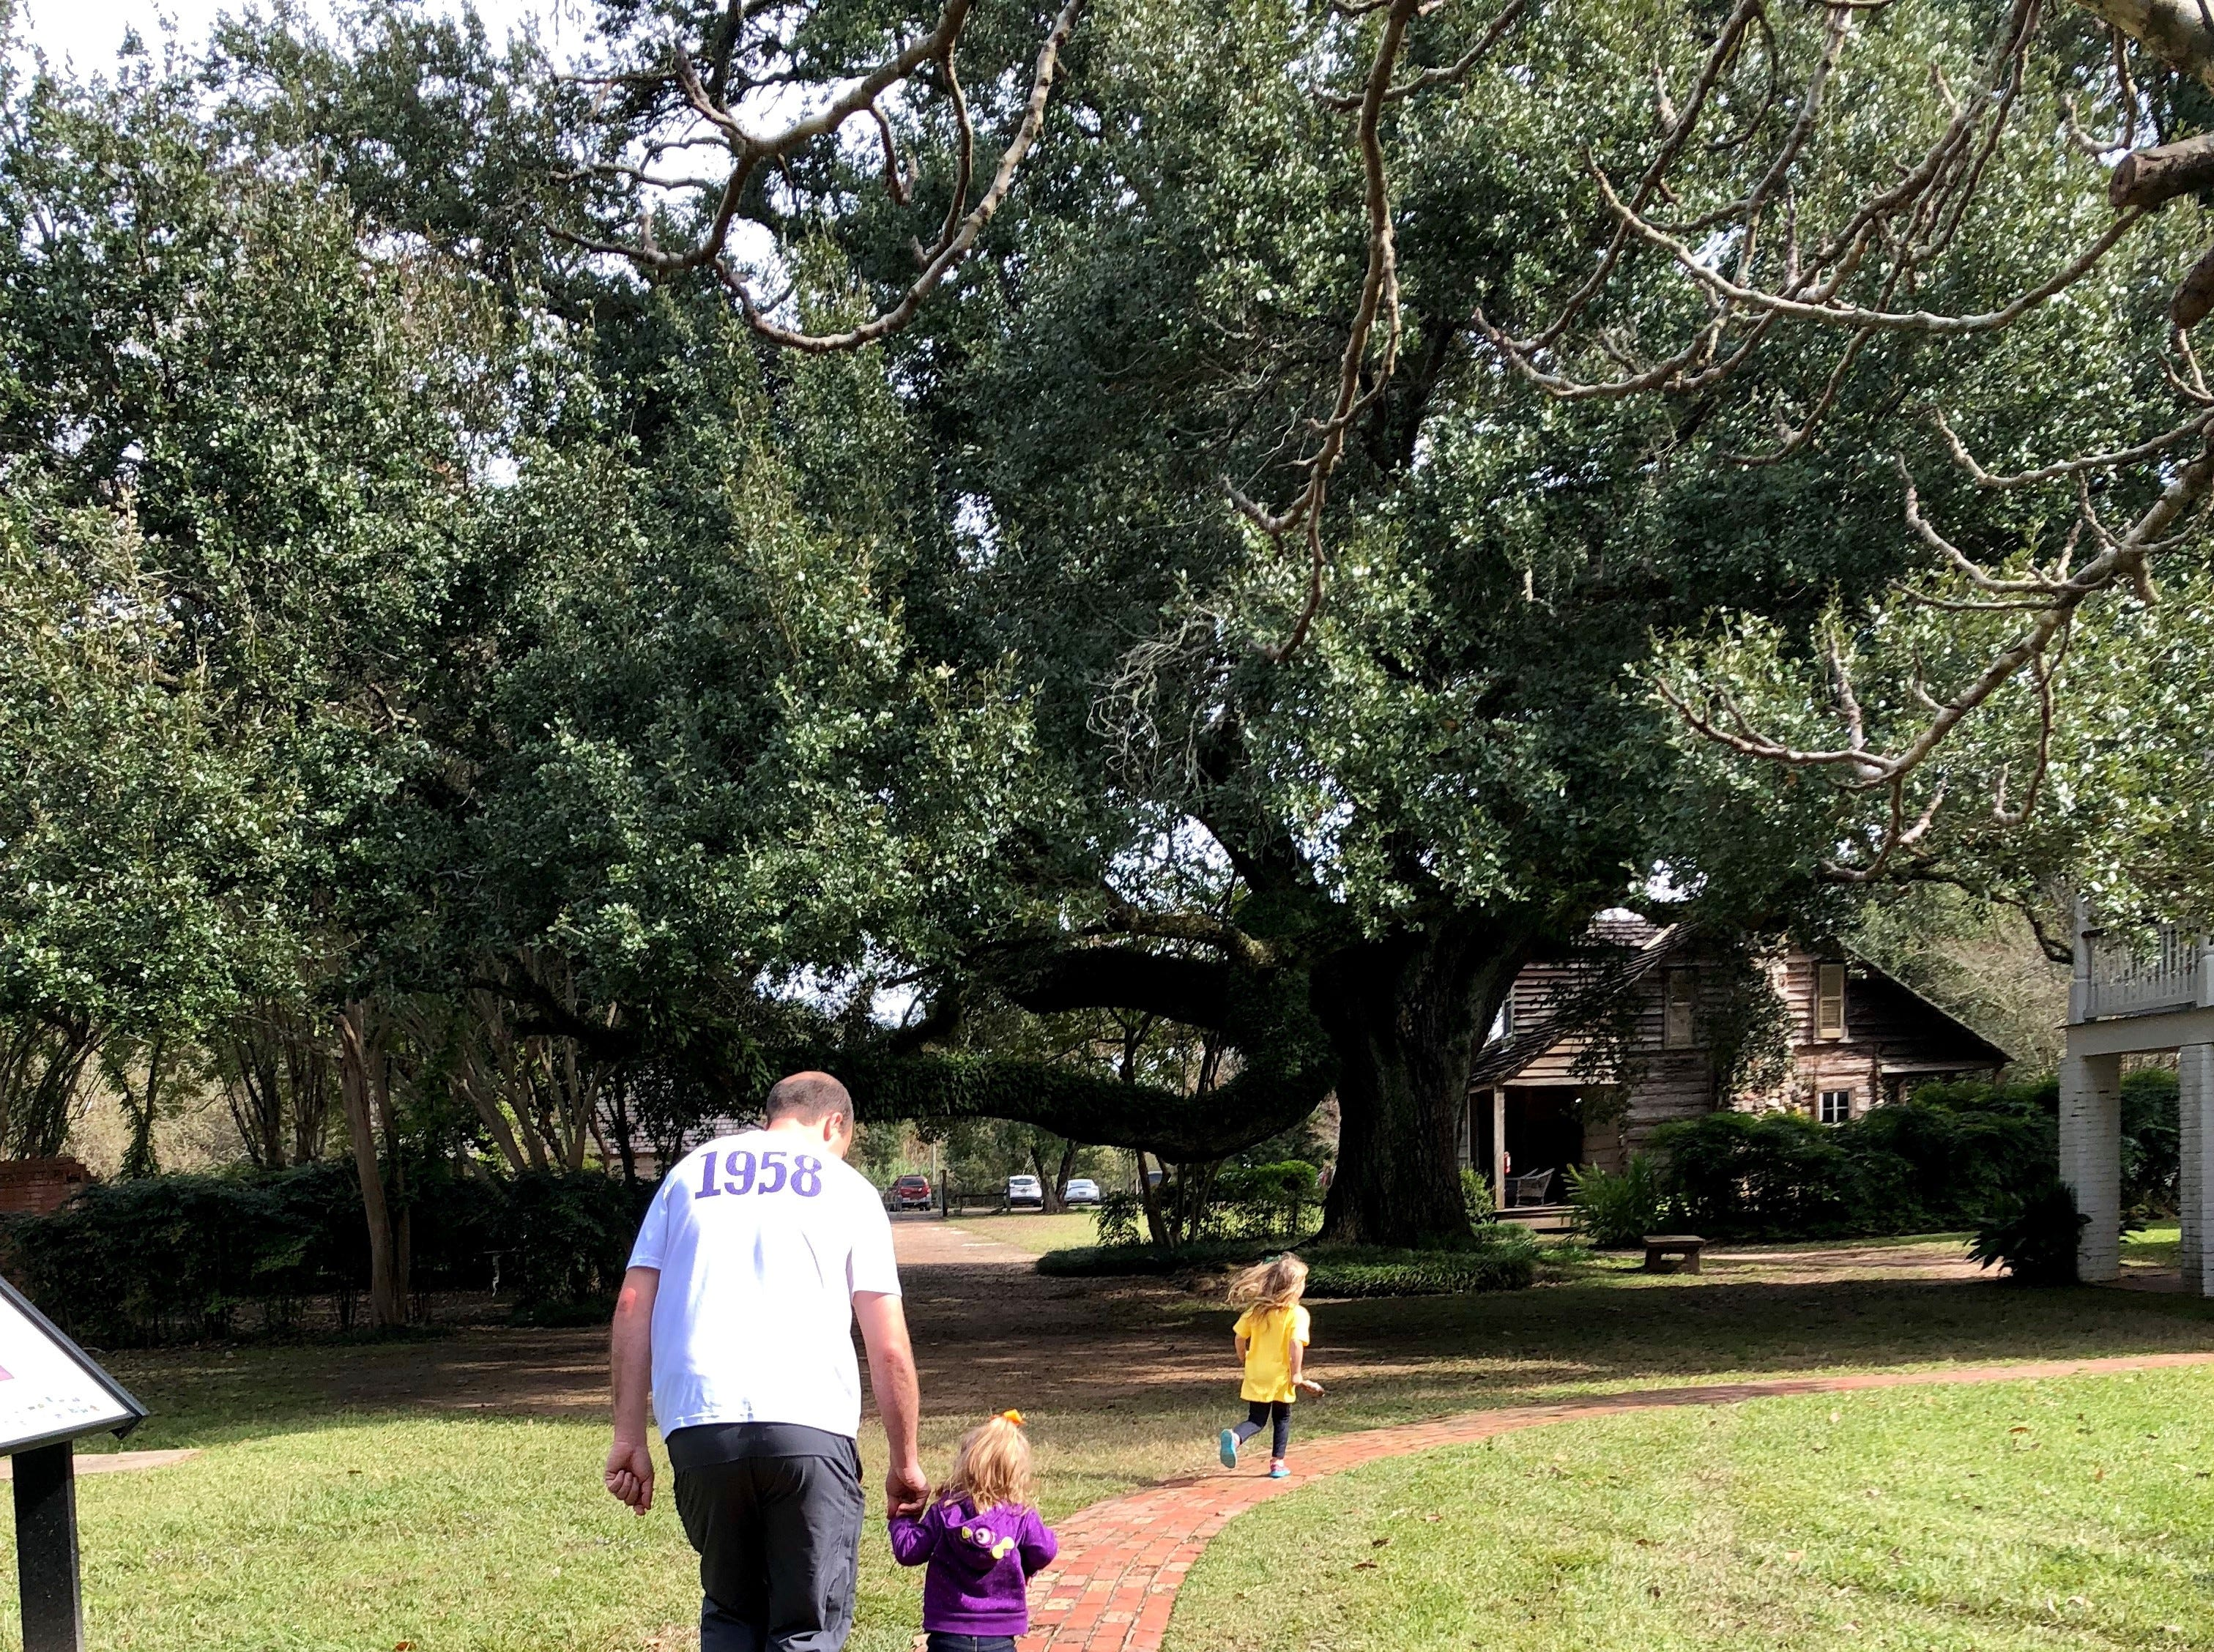 Eric Guidry helps daughters Avery and Marie take the grounds tour of Melrose Plantation in Cloutierville, Natchitoches Parish, as they explore the Cane River Creole National Heritage Trail Nov. 17, 2018.